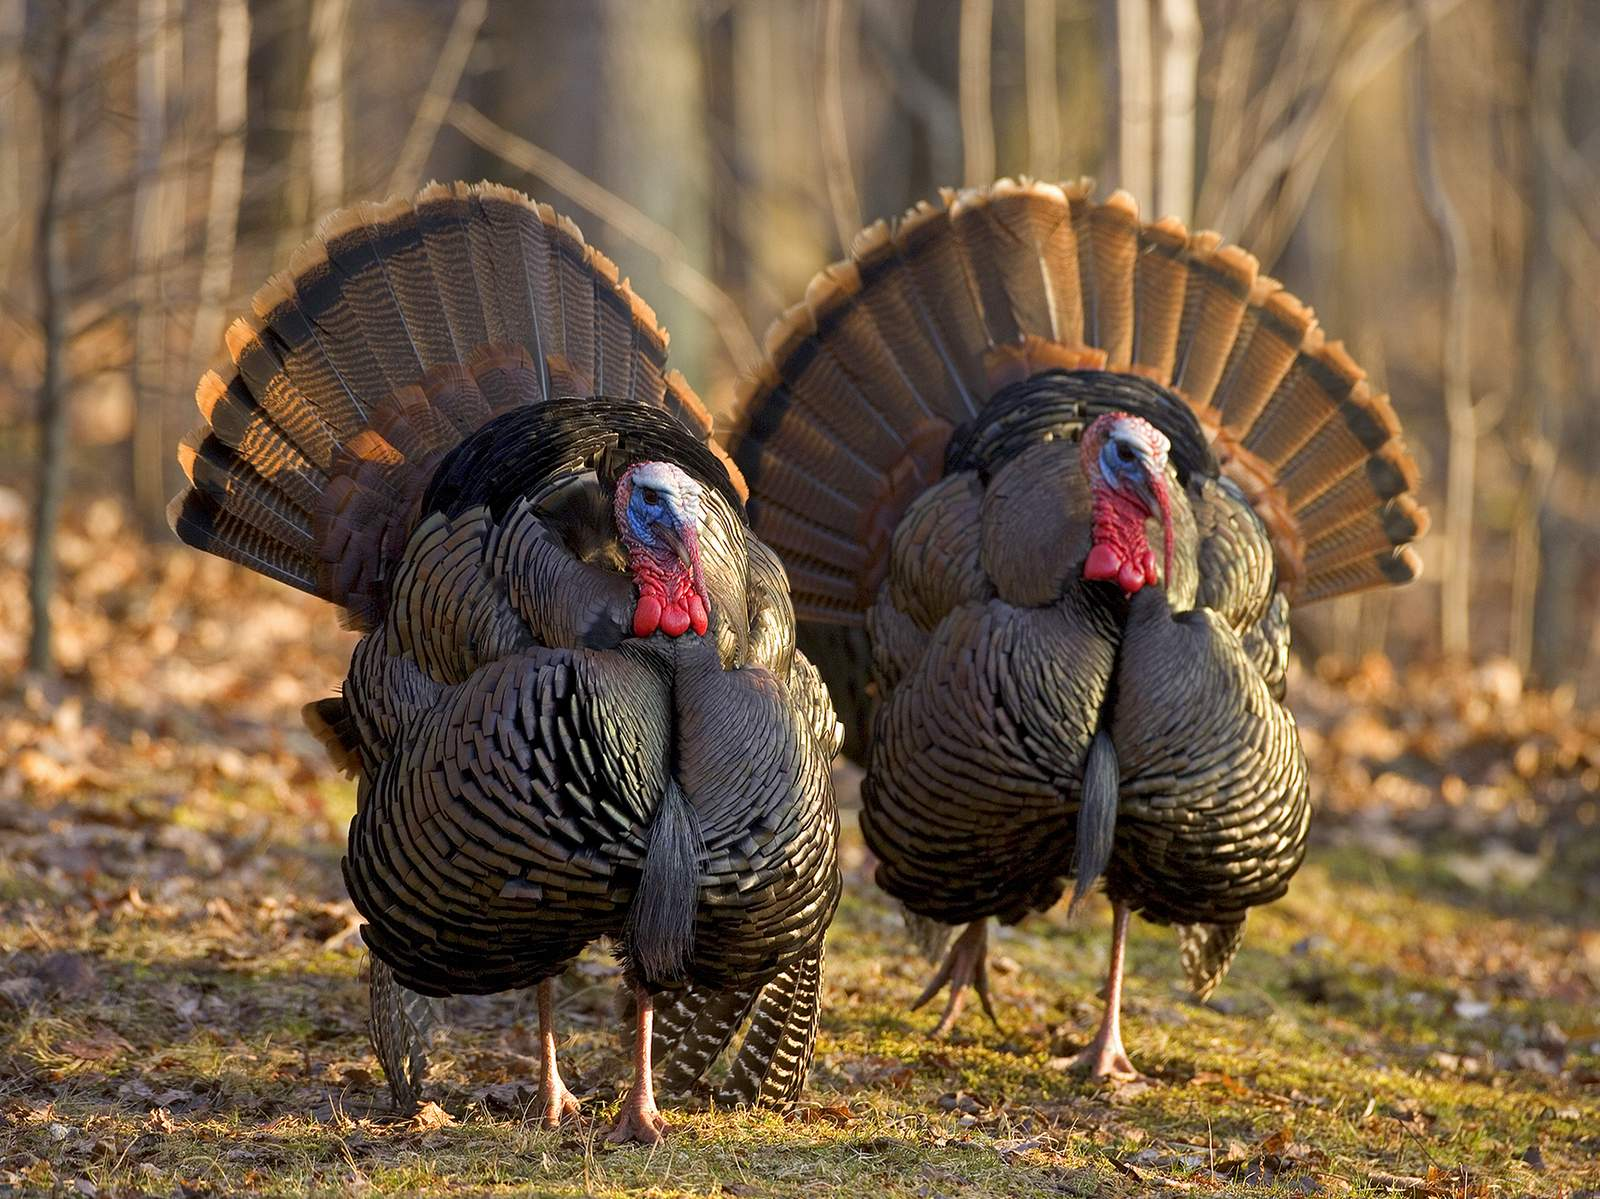 Take the Family on a Wild Turkey Tour